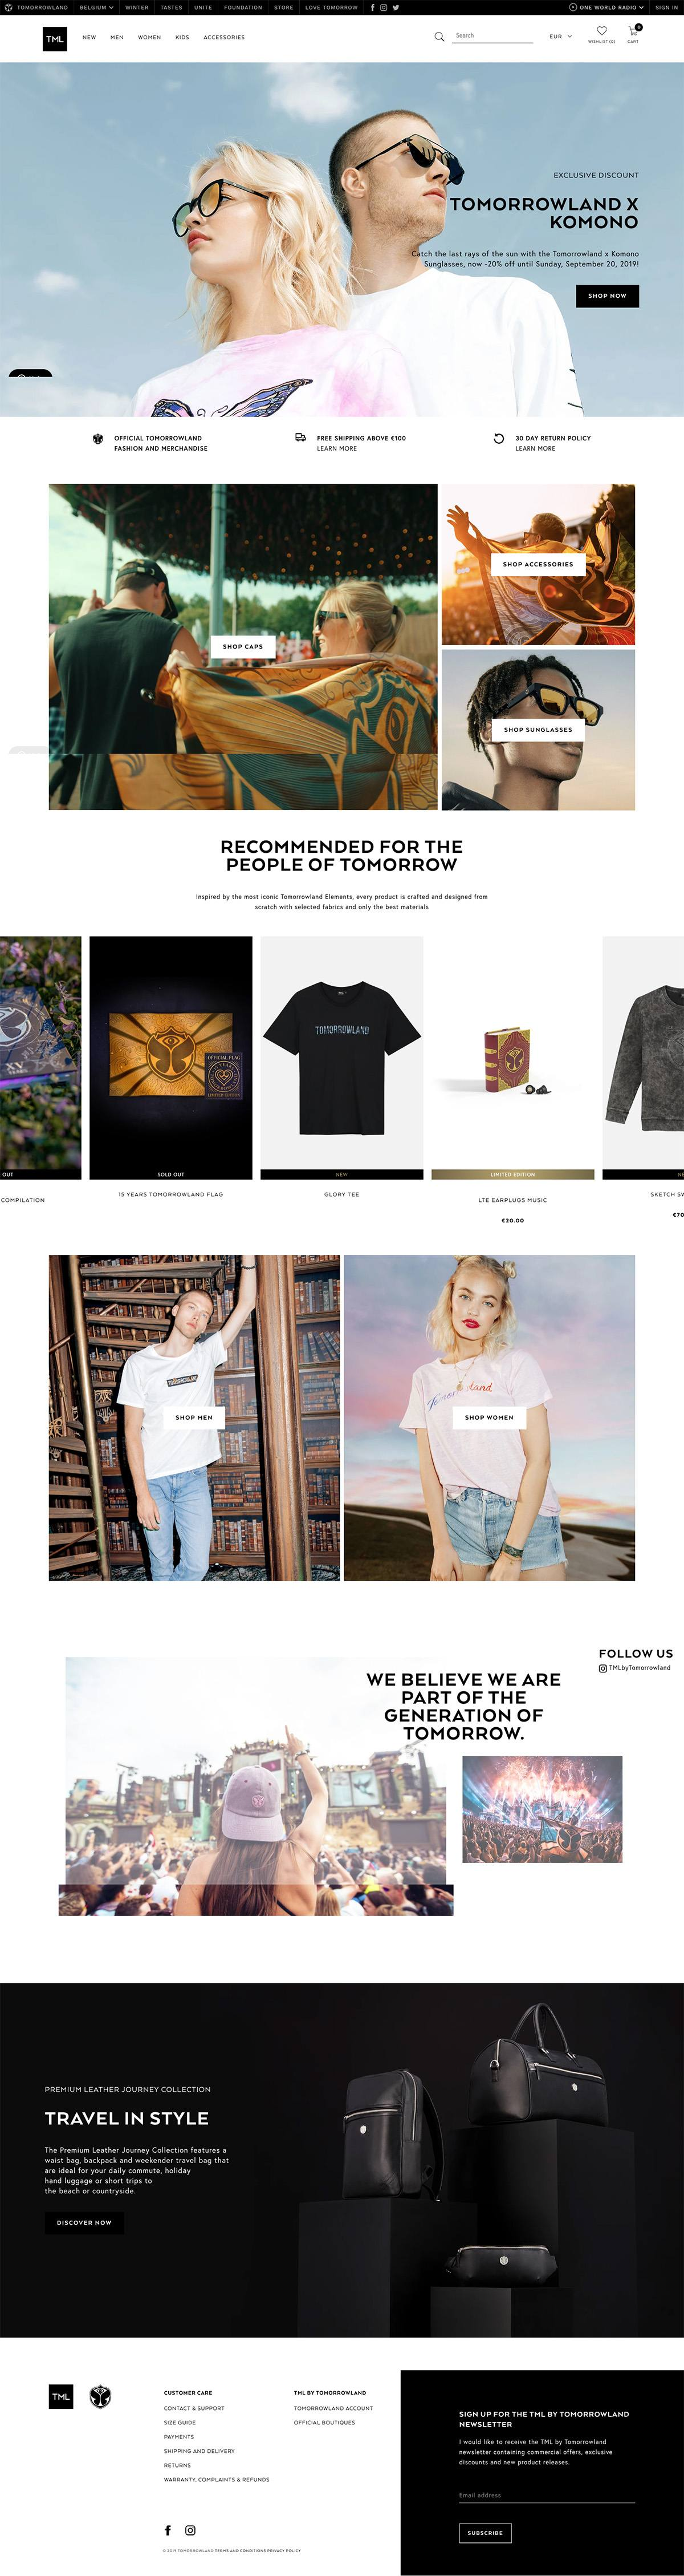 eCommerce website: TML by Tomorrowland